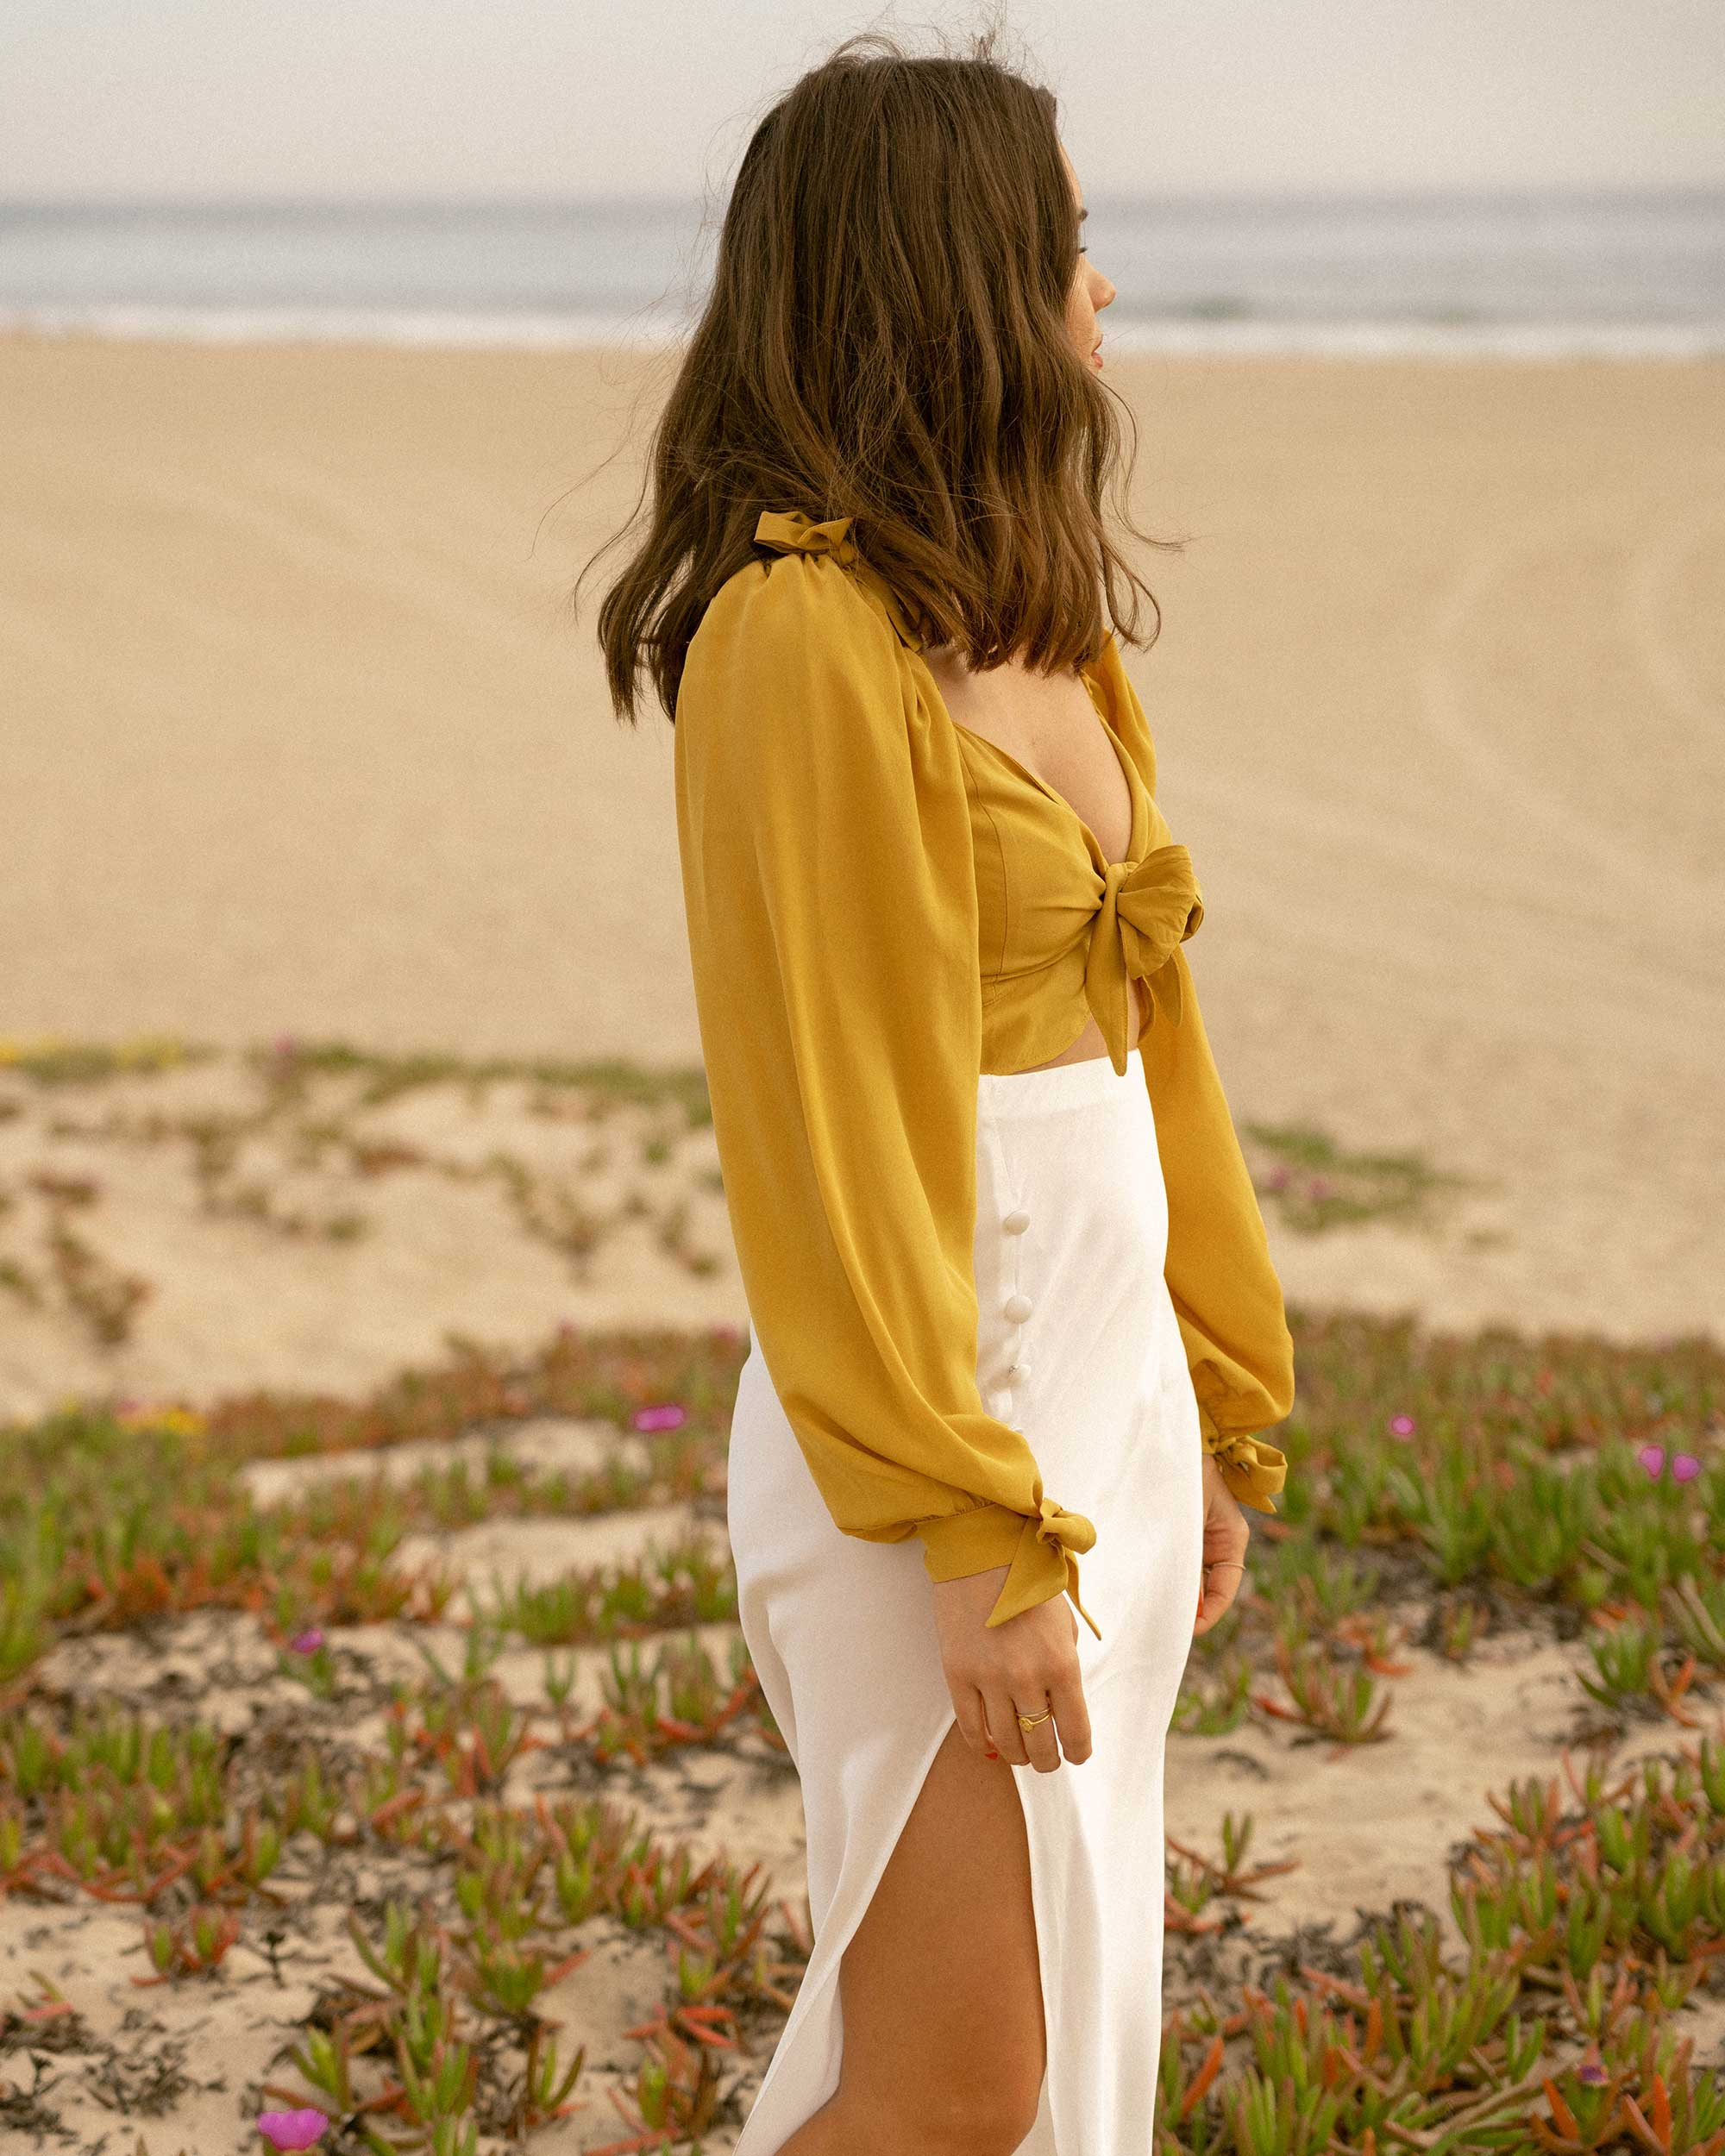 Click to shop outfit + more photos! Sarah Butler of Sarah Styles Seattle wears Yellow bell sleeve crop top and side slit silk midi skirt in Newport Beach, California for the perfect summer outfit | @sarahchristine -5.jpg